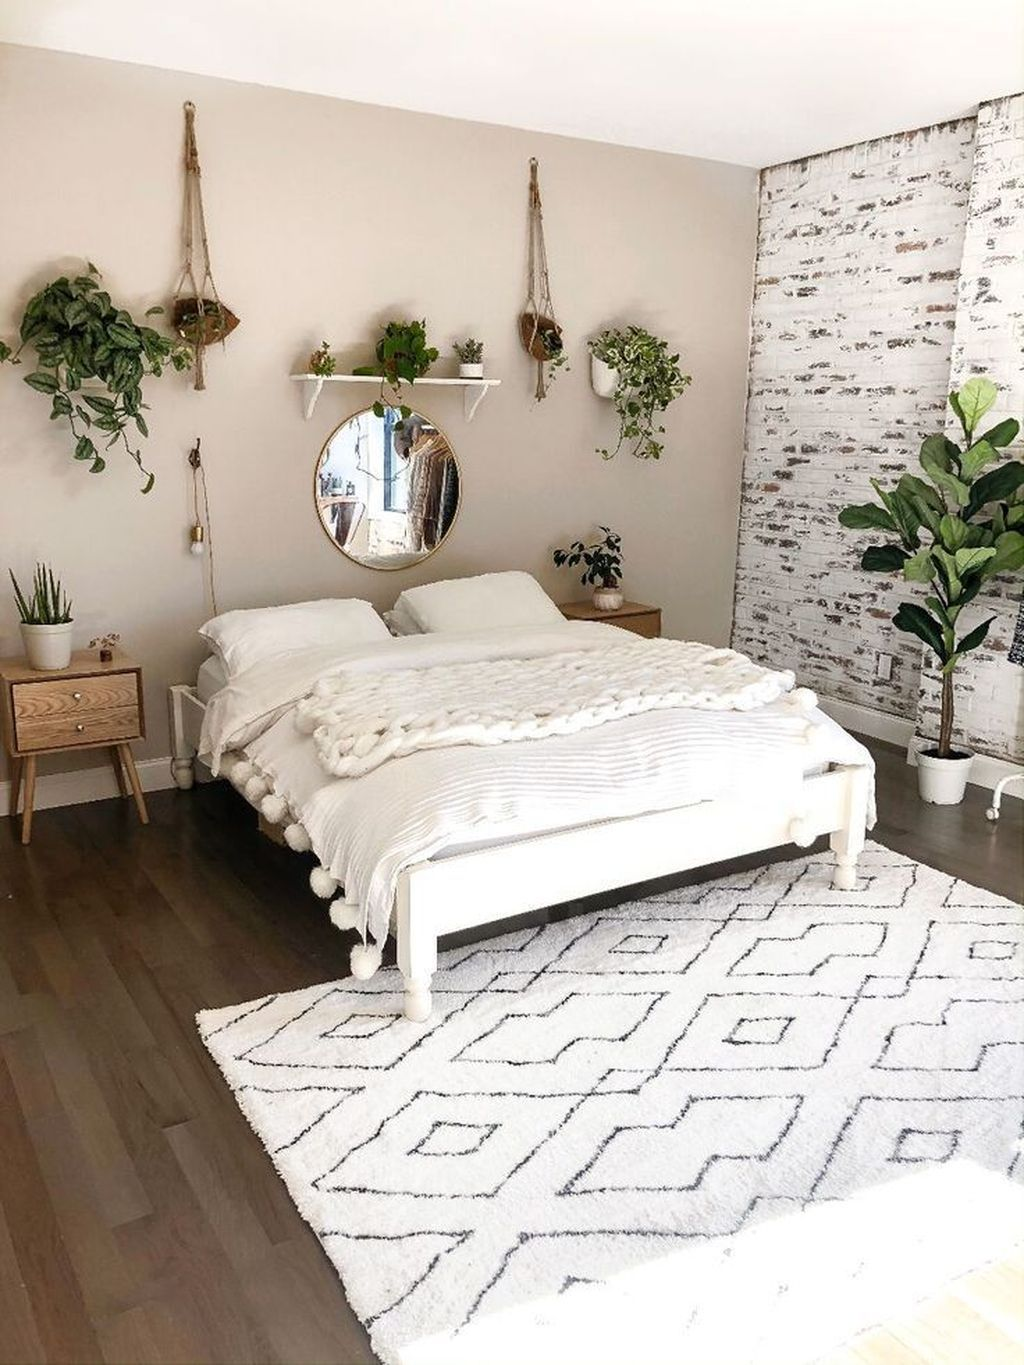 Minimalistic interior design style is getting more popular today. Minimalism means simple and basic, without utilizing a lot of ornaments […]